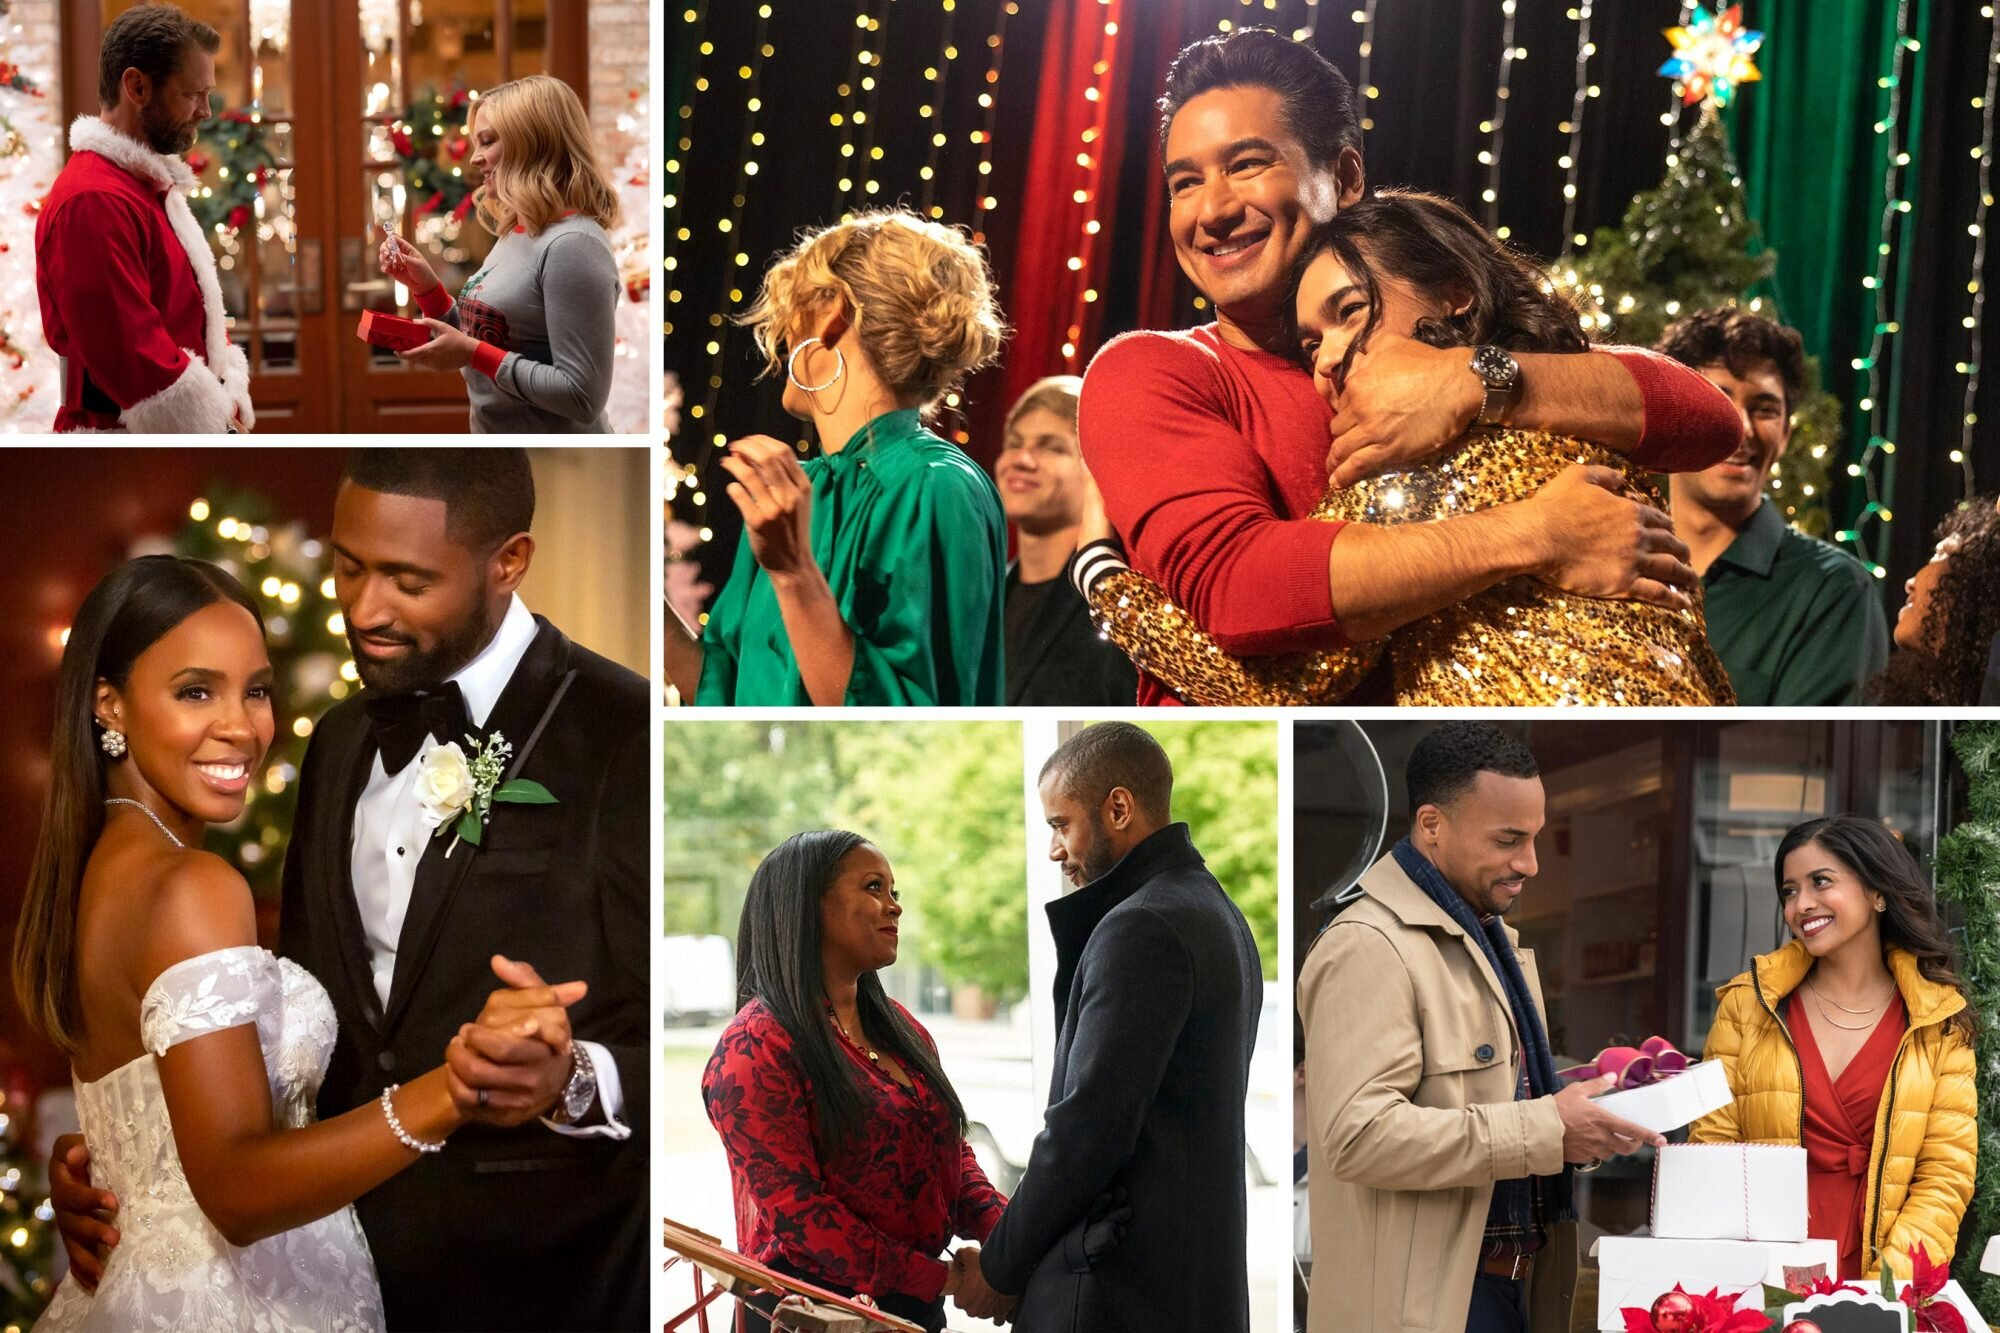 Lifetime Christmas 2020 See 2020 Lifetime Christmas movie schedule, photos | EW.com